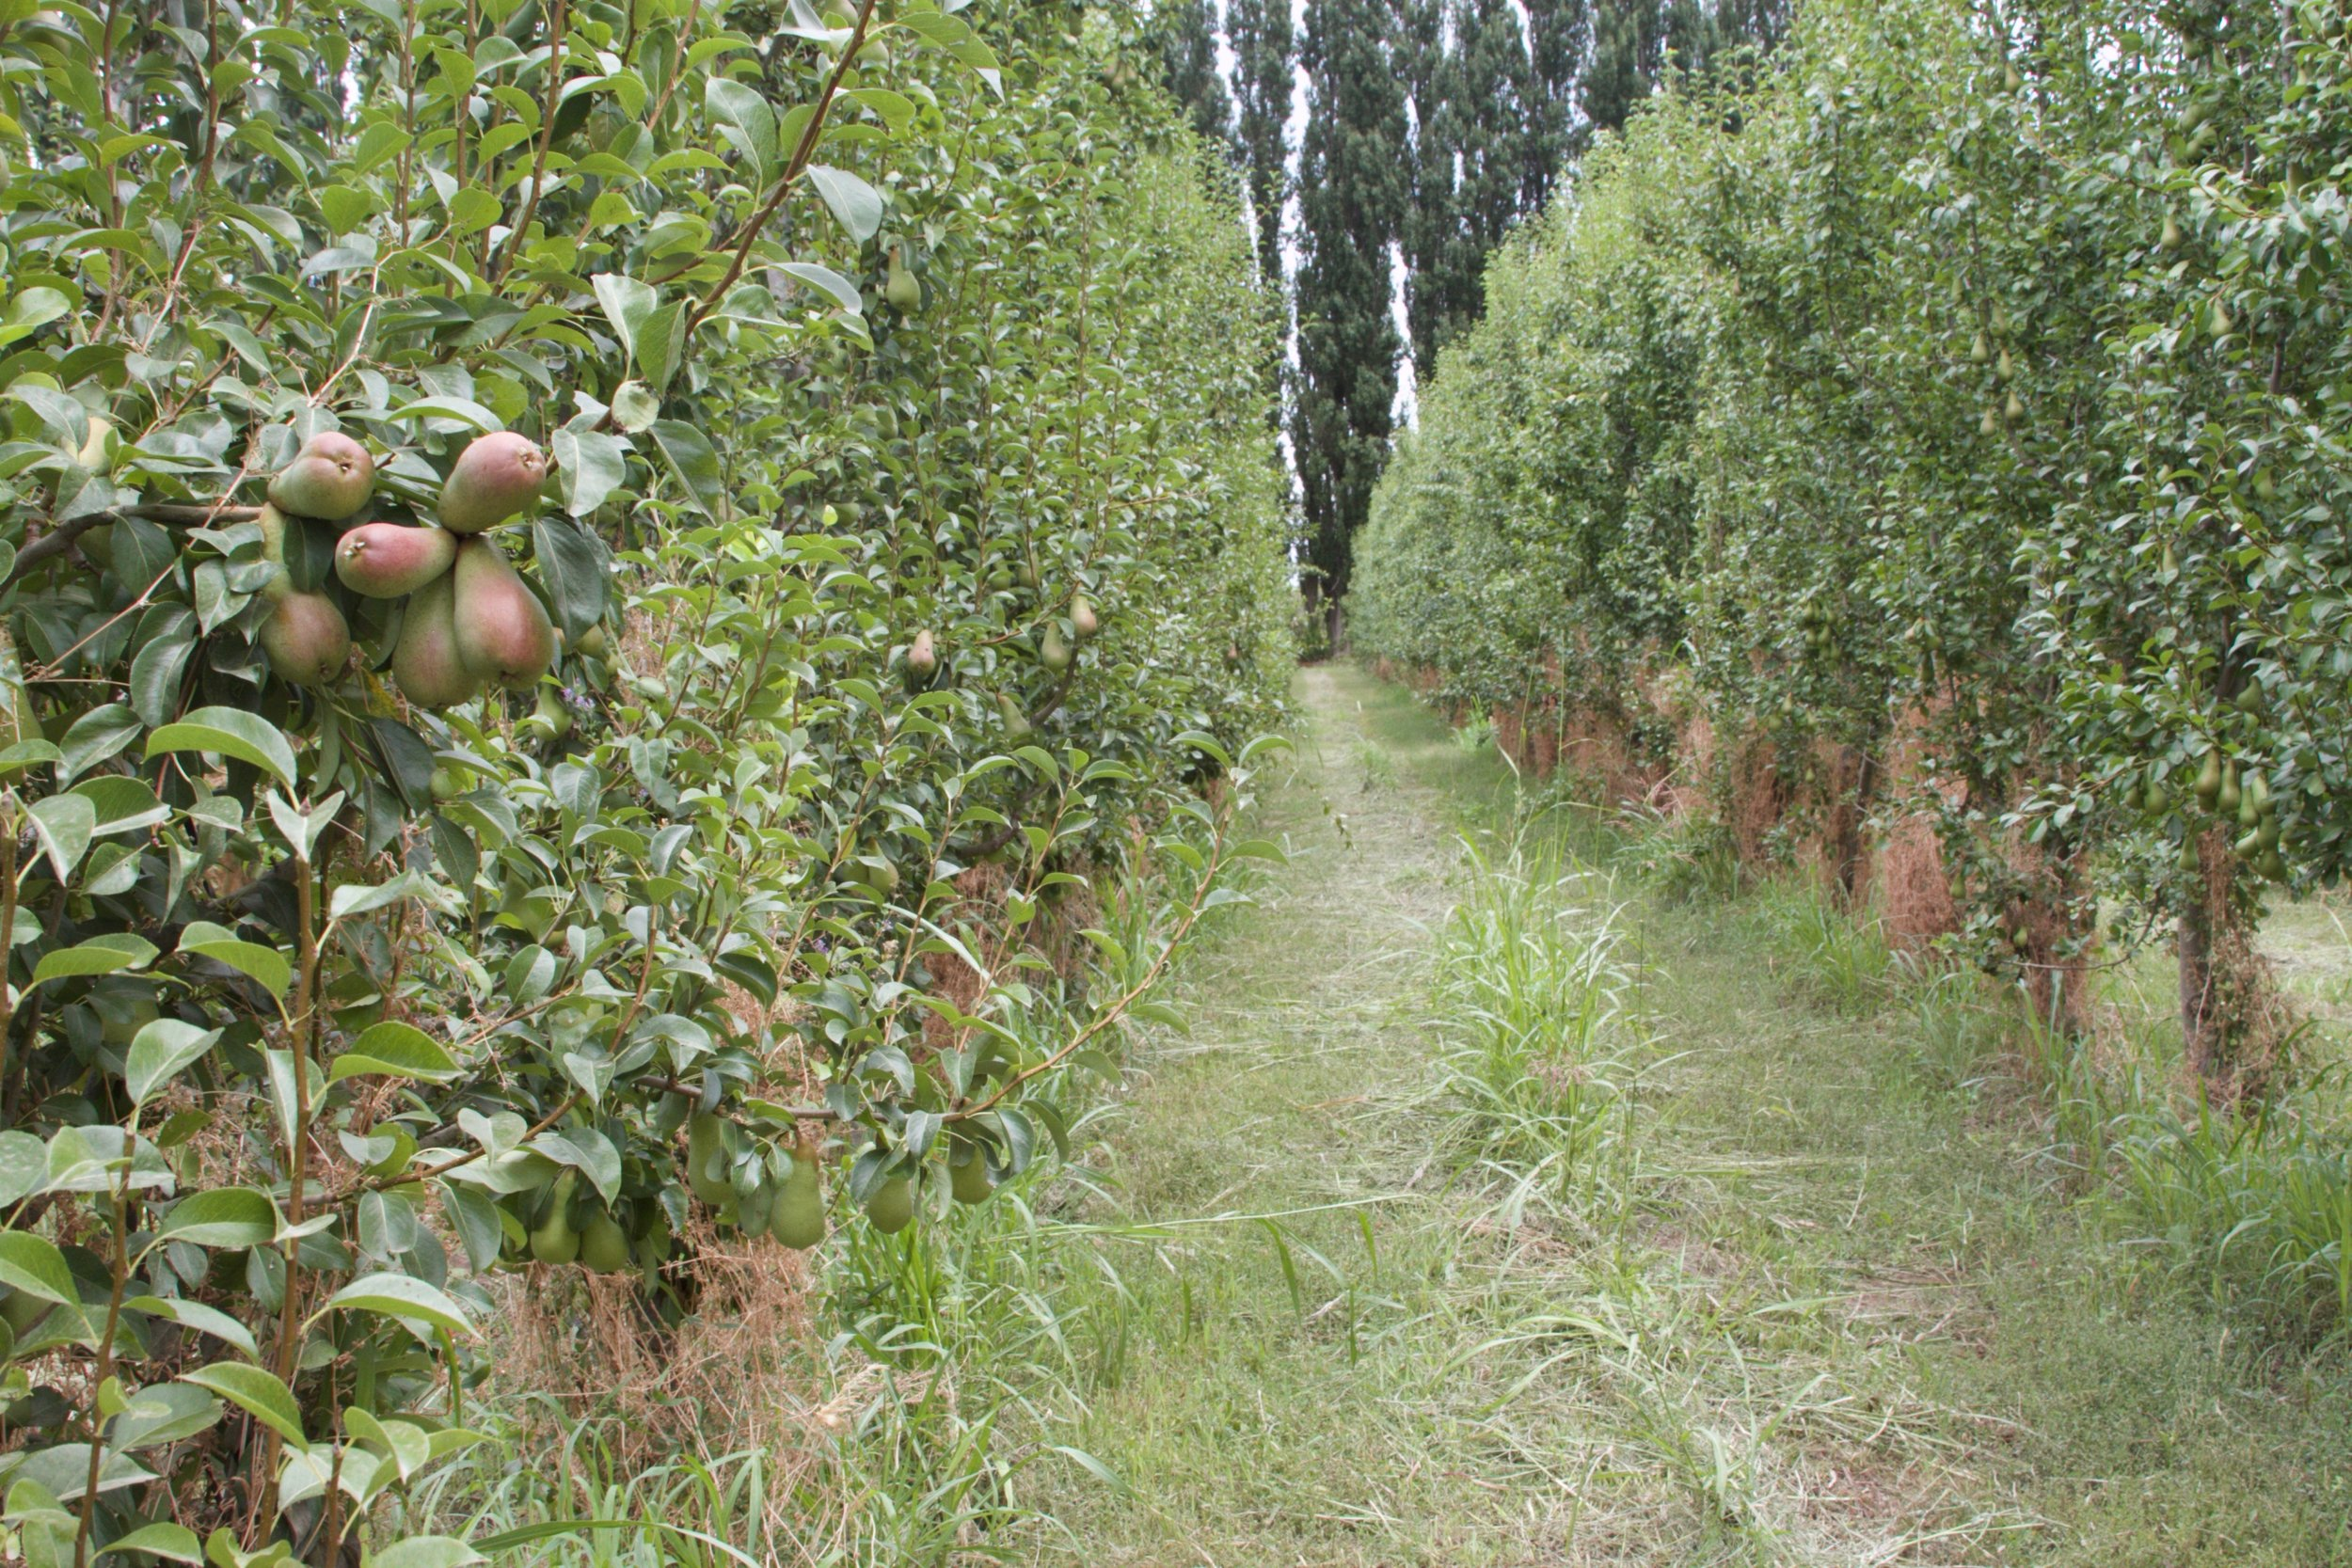 Poplar windbreaks shelter the Saralegui orchard. Orchards without windbreaks produce 19% less A-grade fruit.